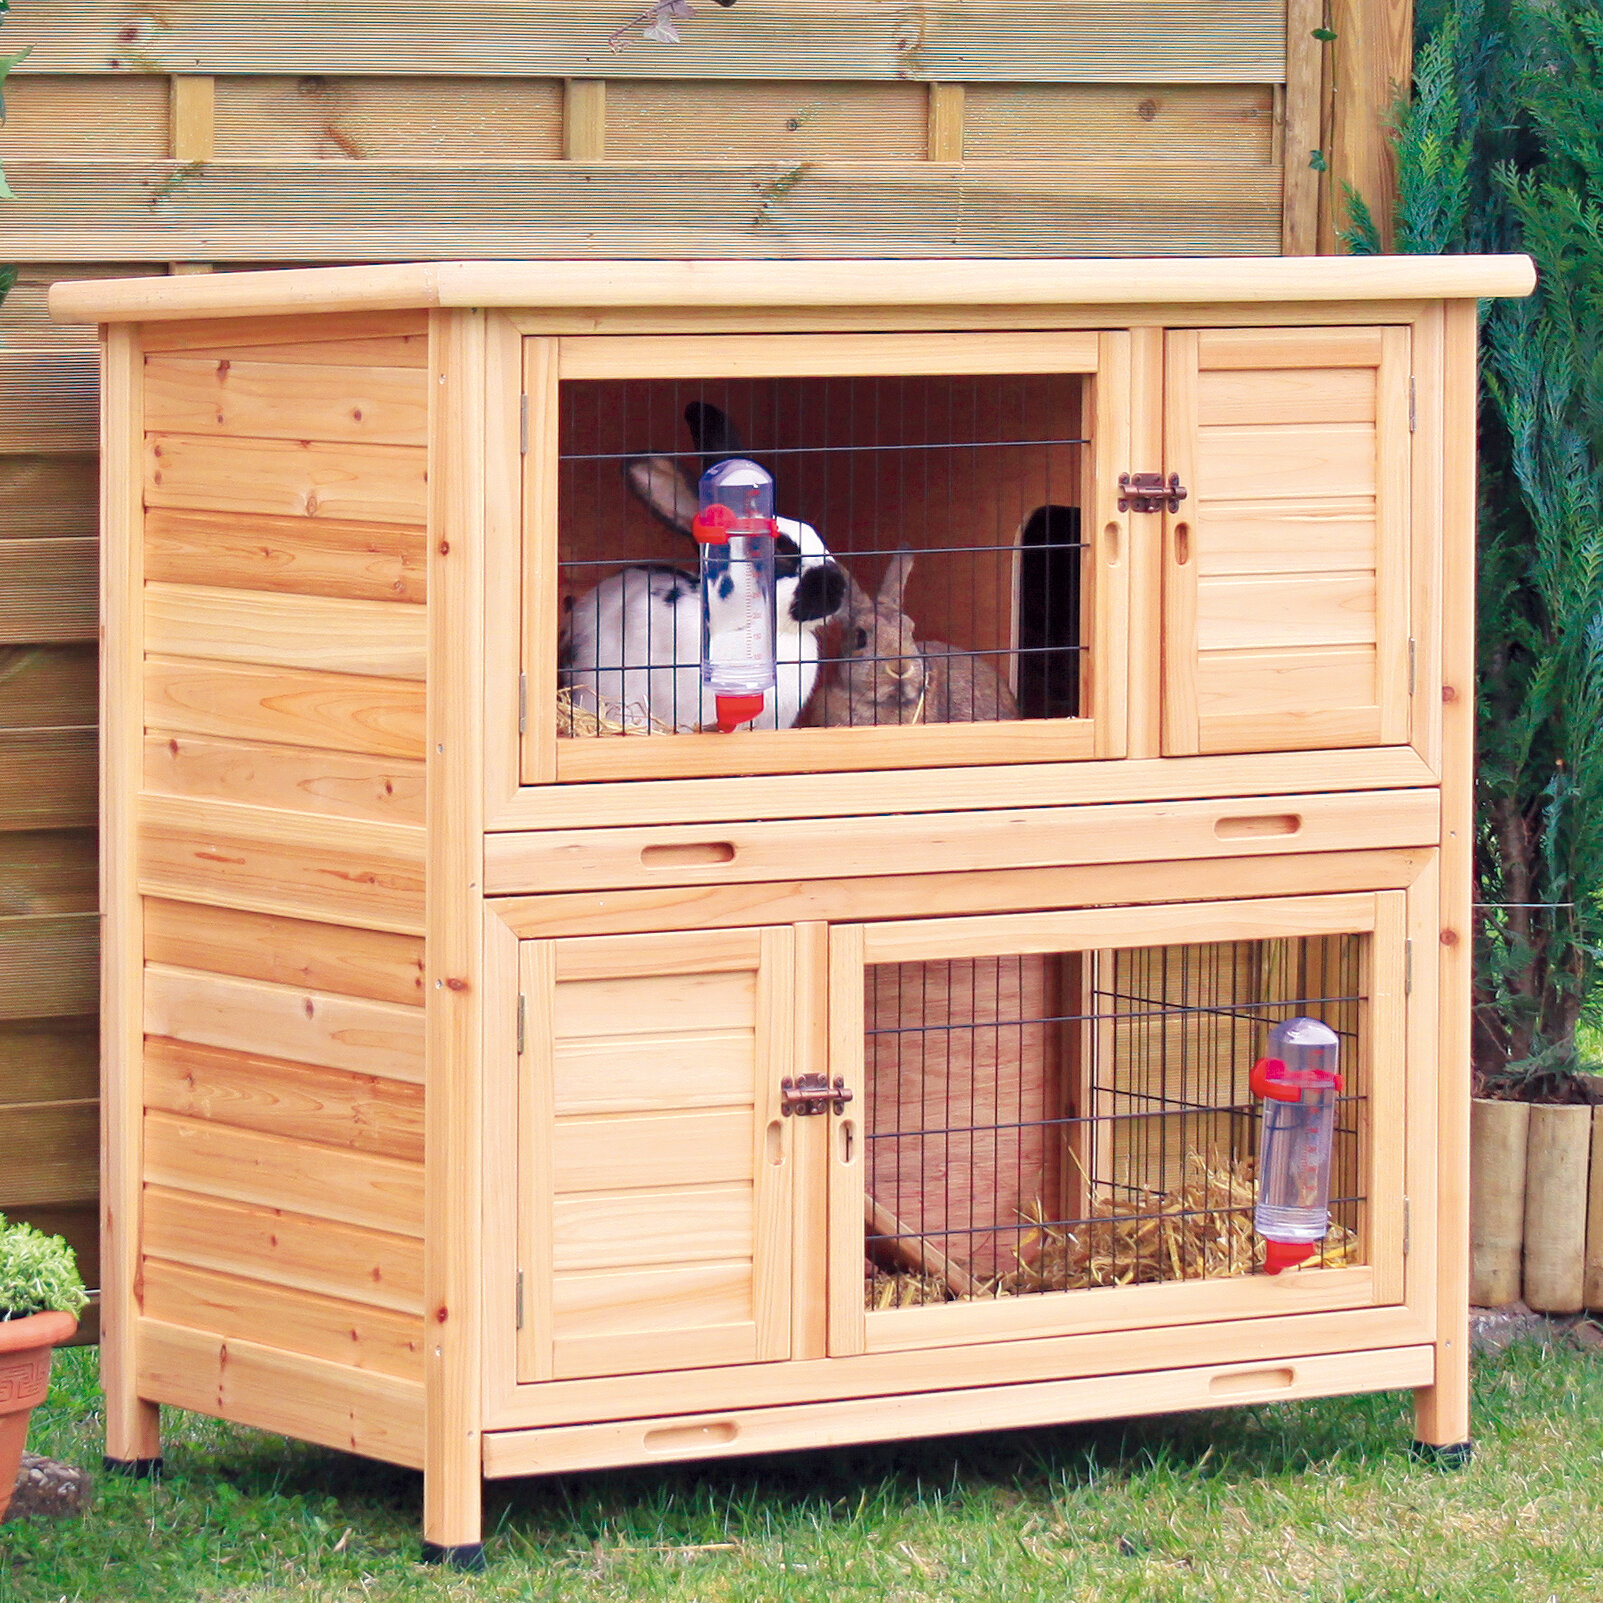 Rabbit Hutch Rabbit House Rabbit Supplies Guinea Pig supplies Rabbit ...